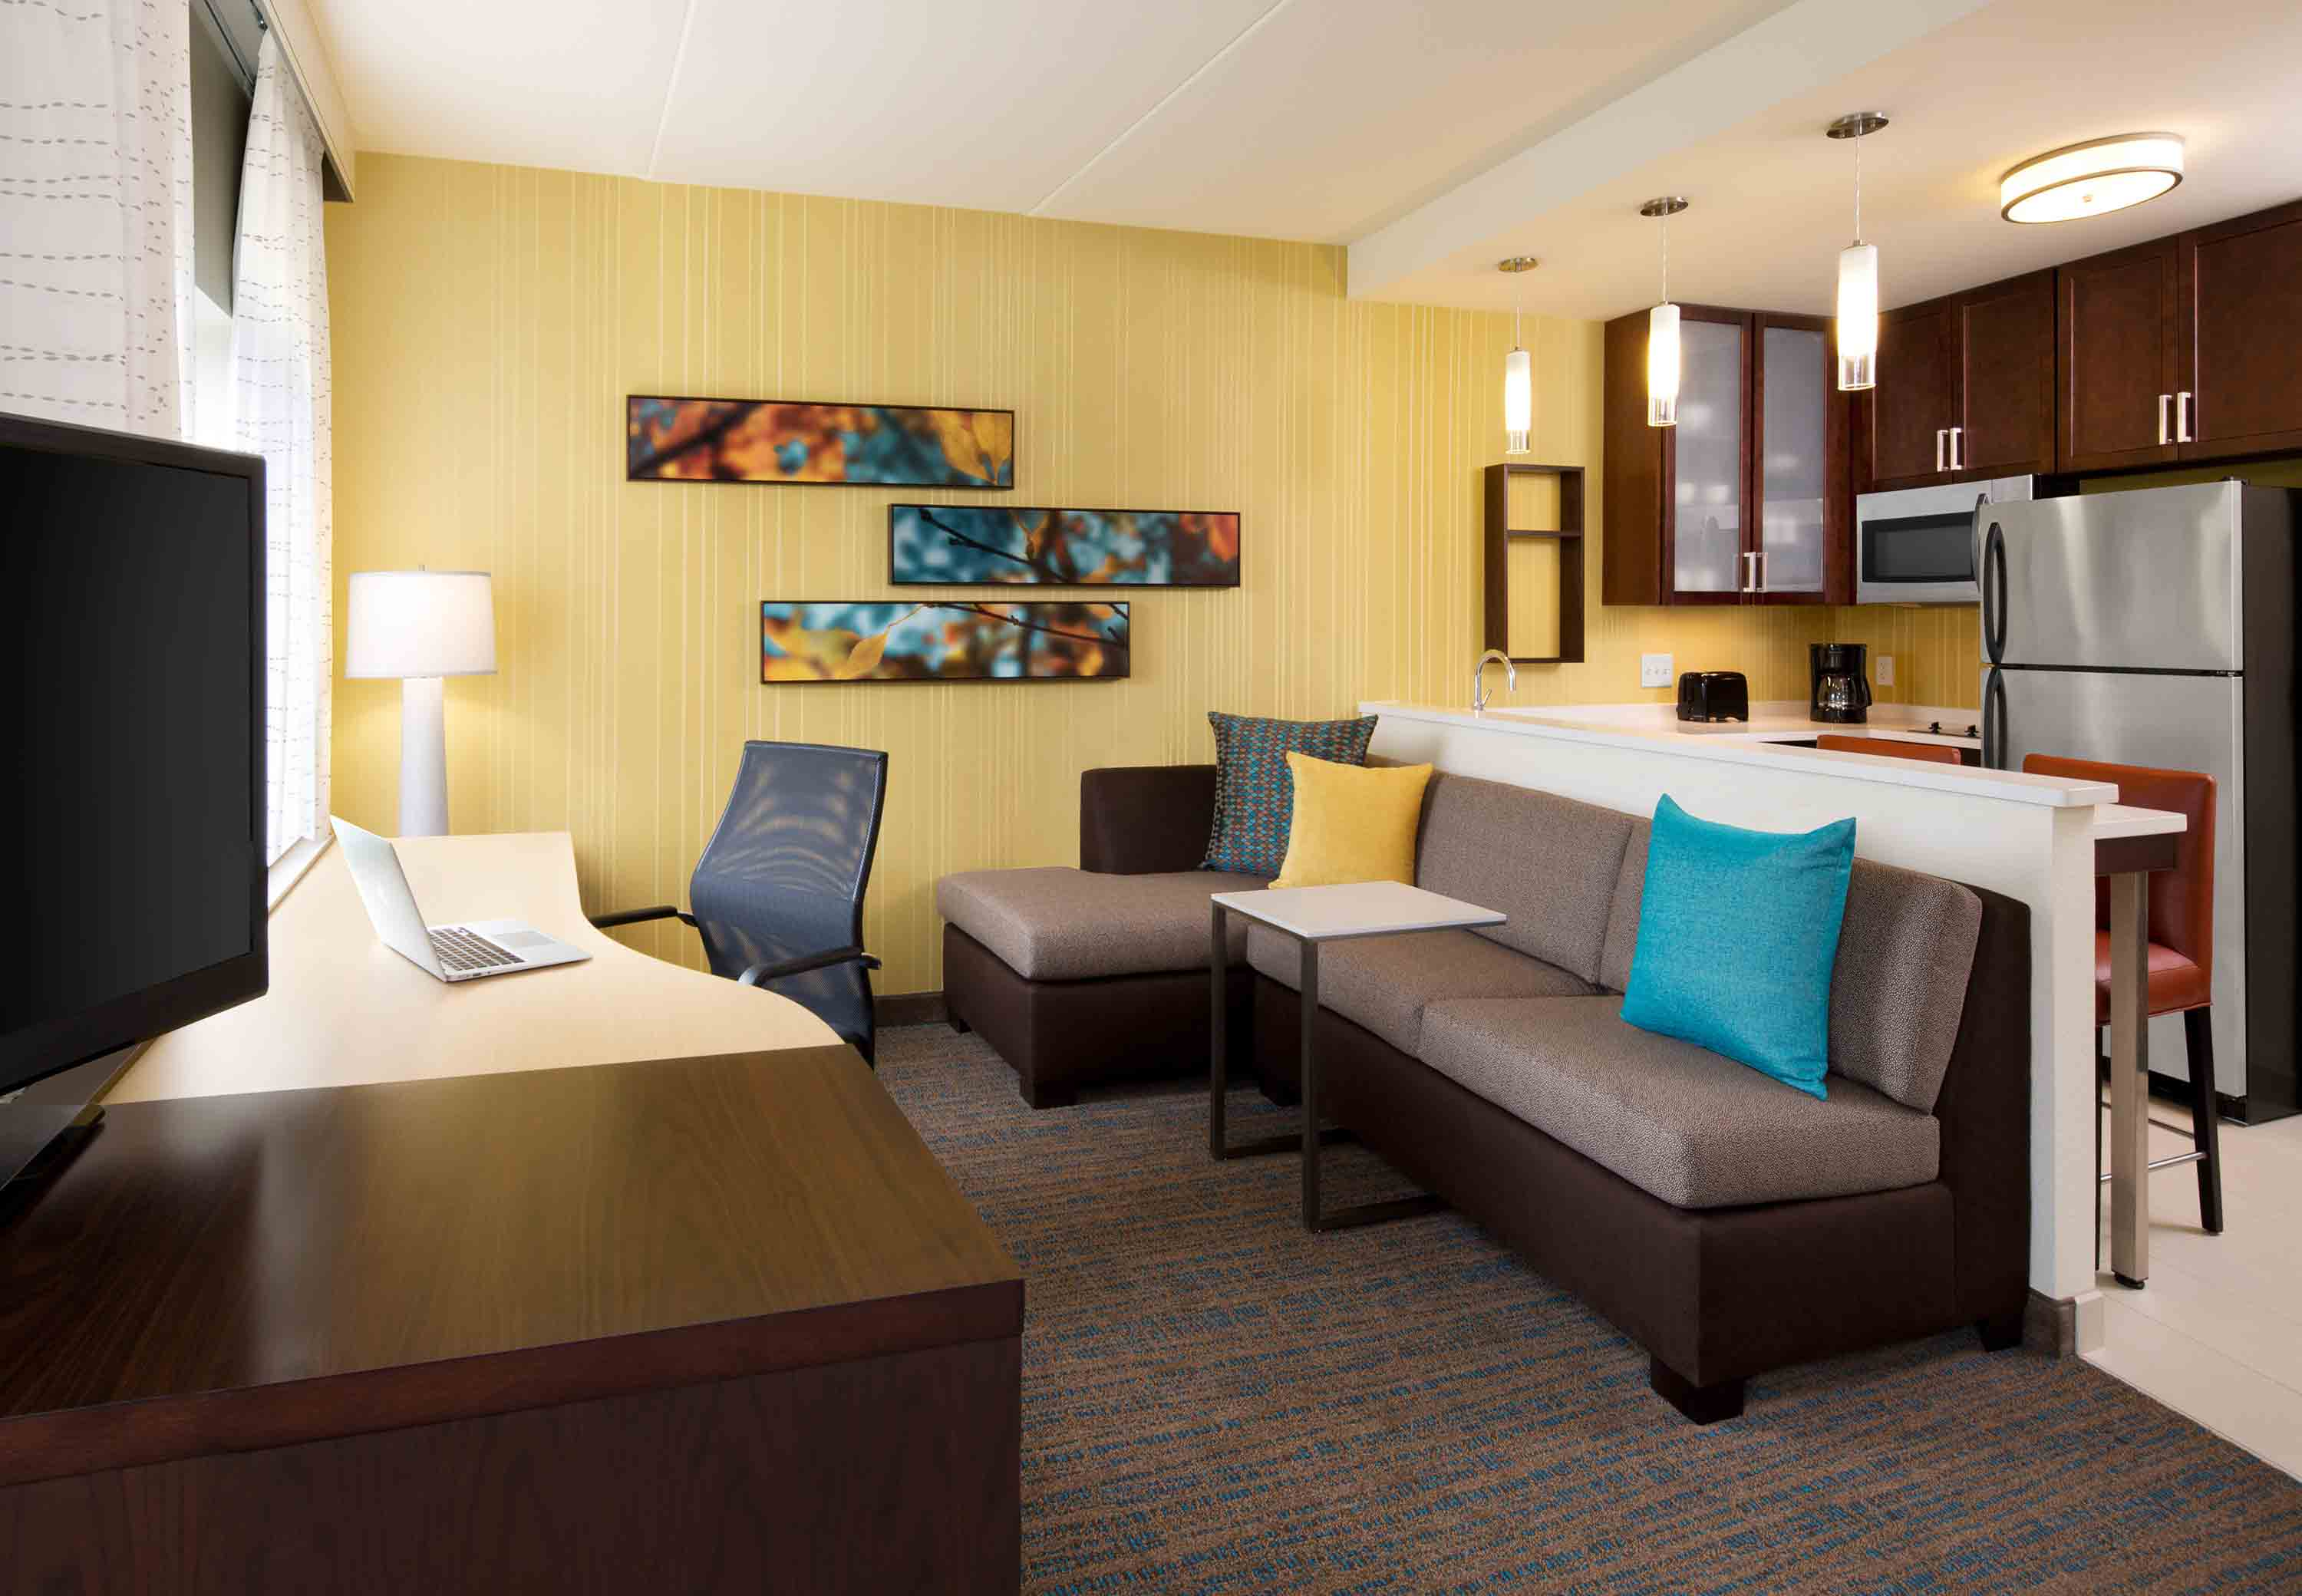 Residence Inn by Marriott Cleveland Avon at The Emerald Event Center image 7